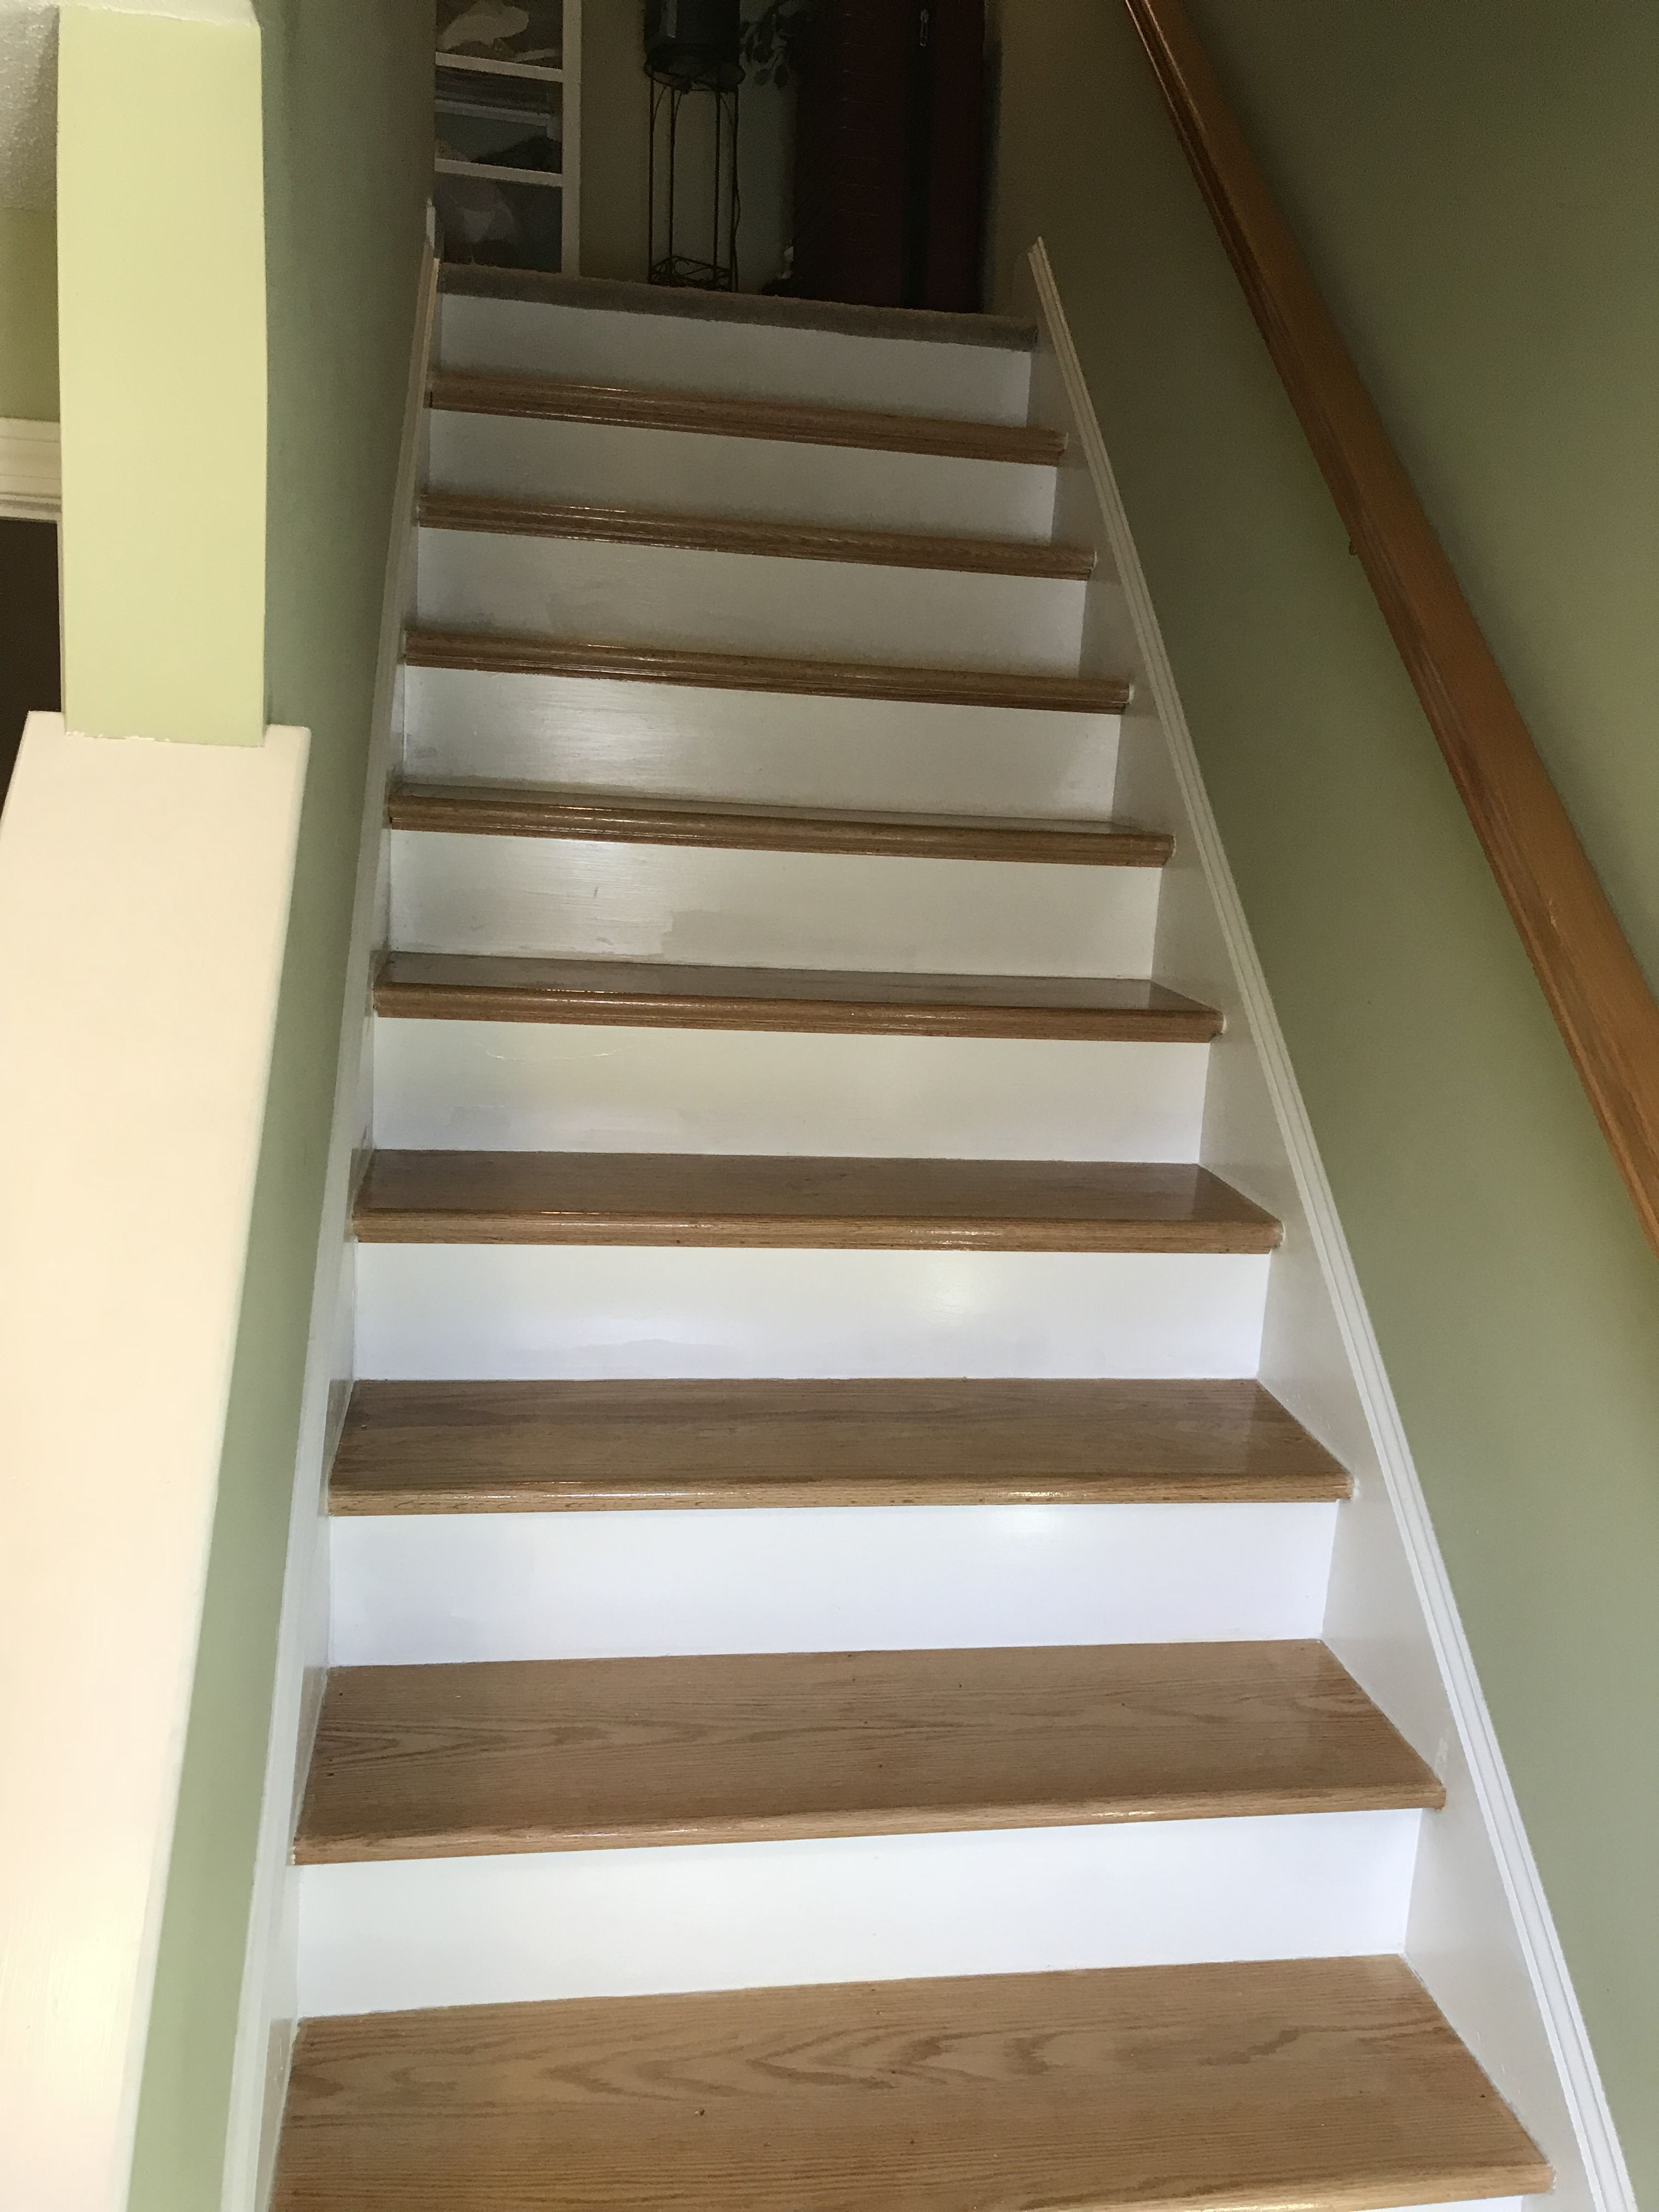 Custom Built Red Oak Stair Treads Built And Installed By Snhwoodworks LLC.